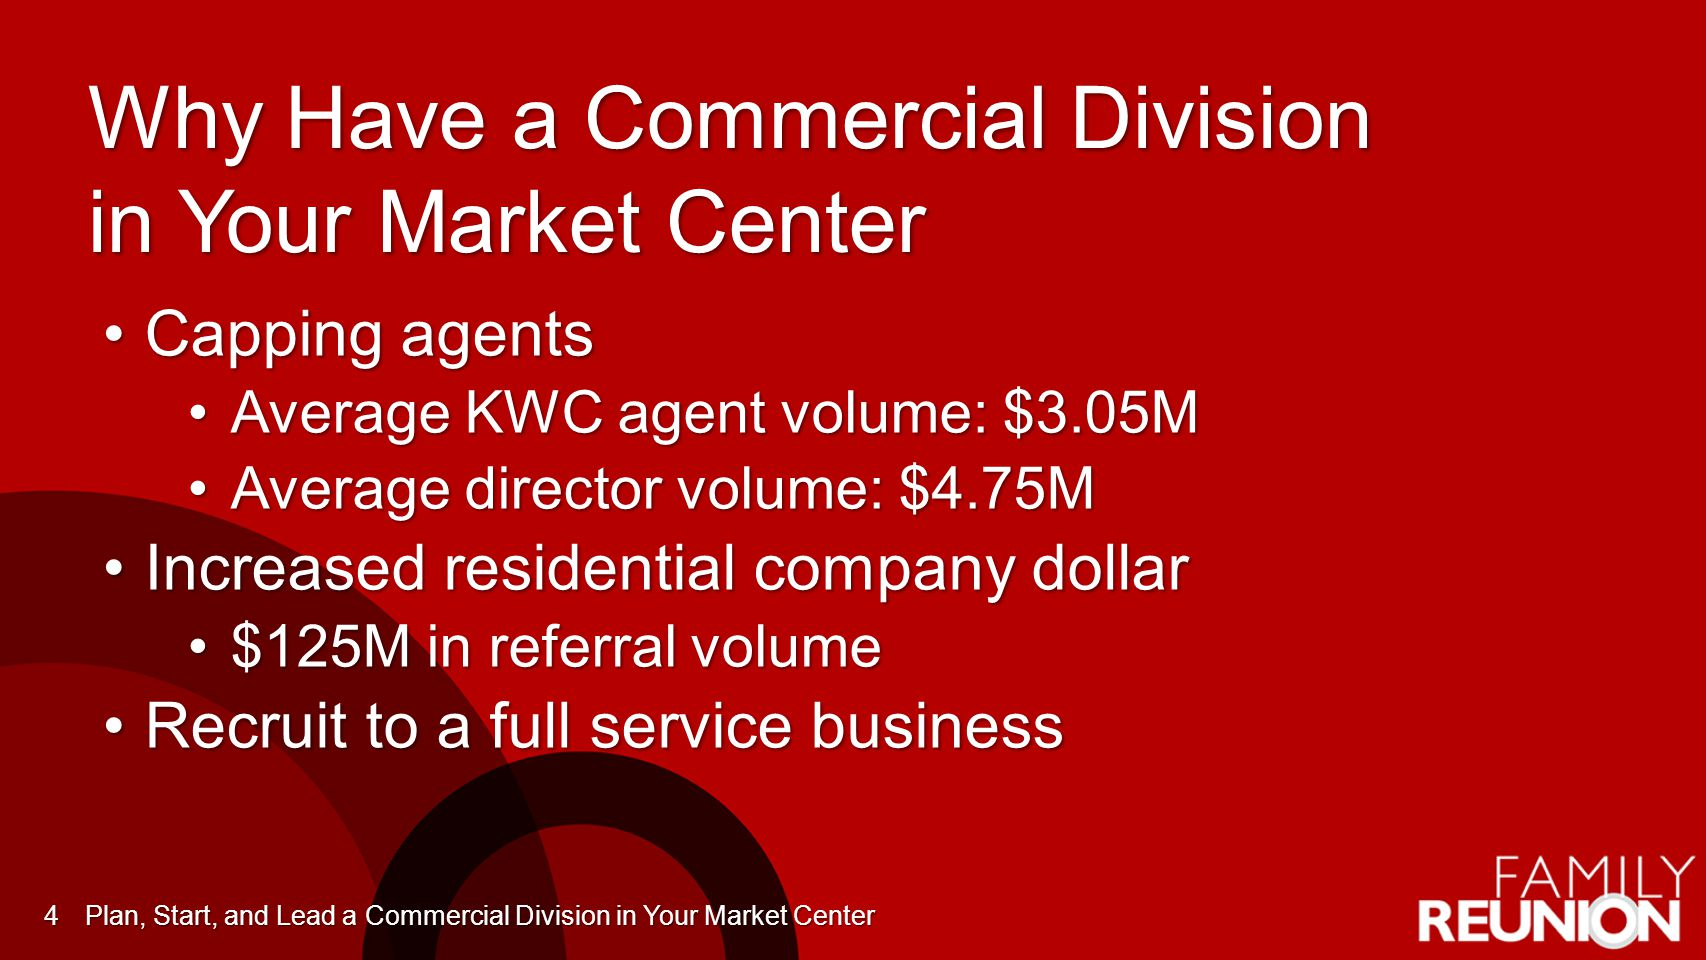 Competitor Search Plan, Start, and Lead a Commercial Division in Your Market Center25